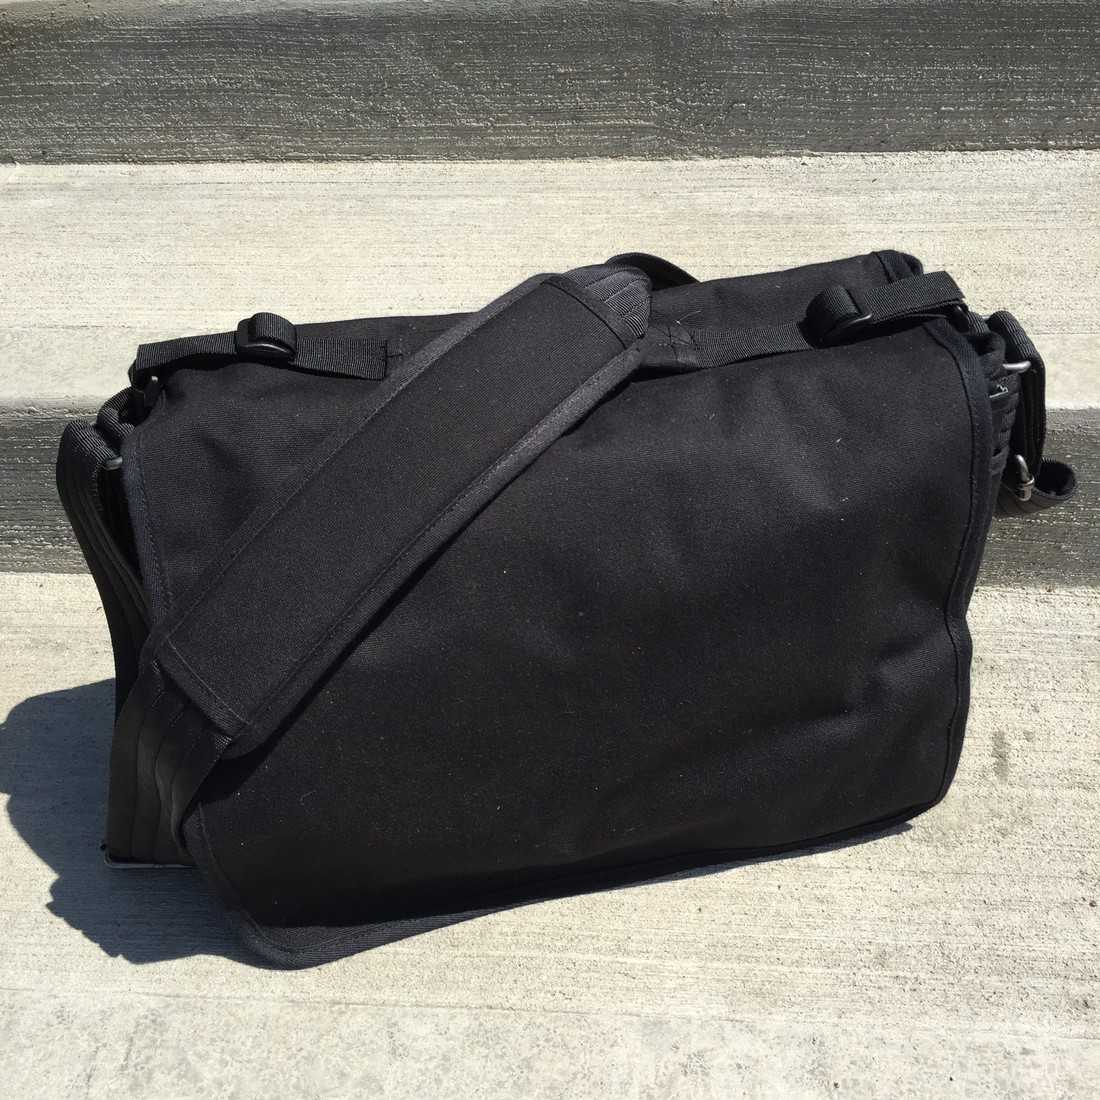 Camera Dslr Camera Bags Review 17 camera messenger bags hands on review whats the best think tank retrospective 30